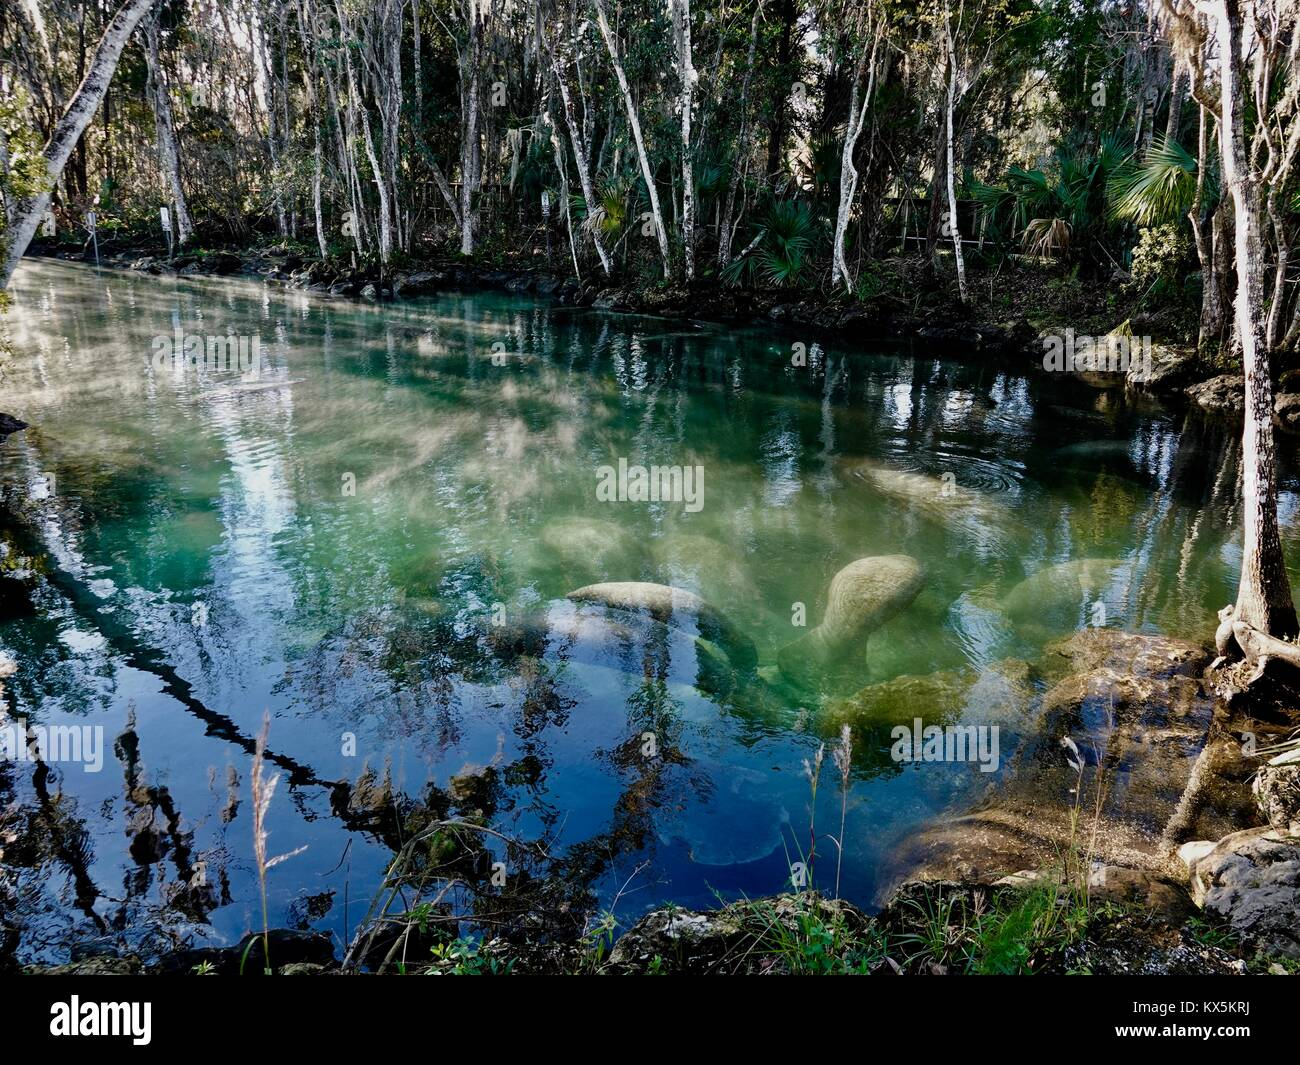 manatees-trichechus-manatus-gathered-in-